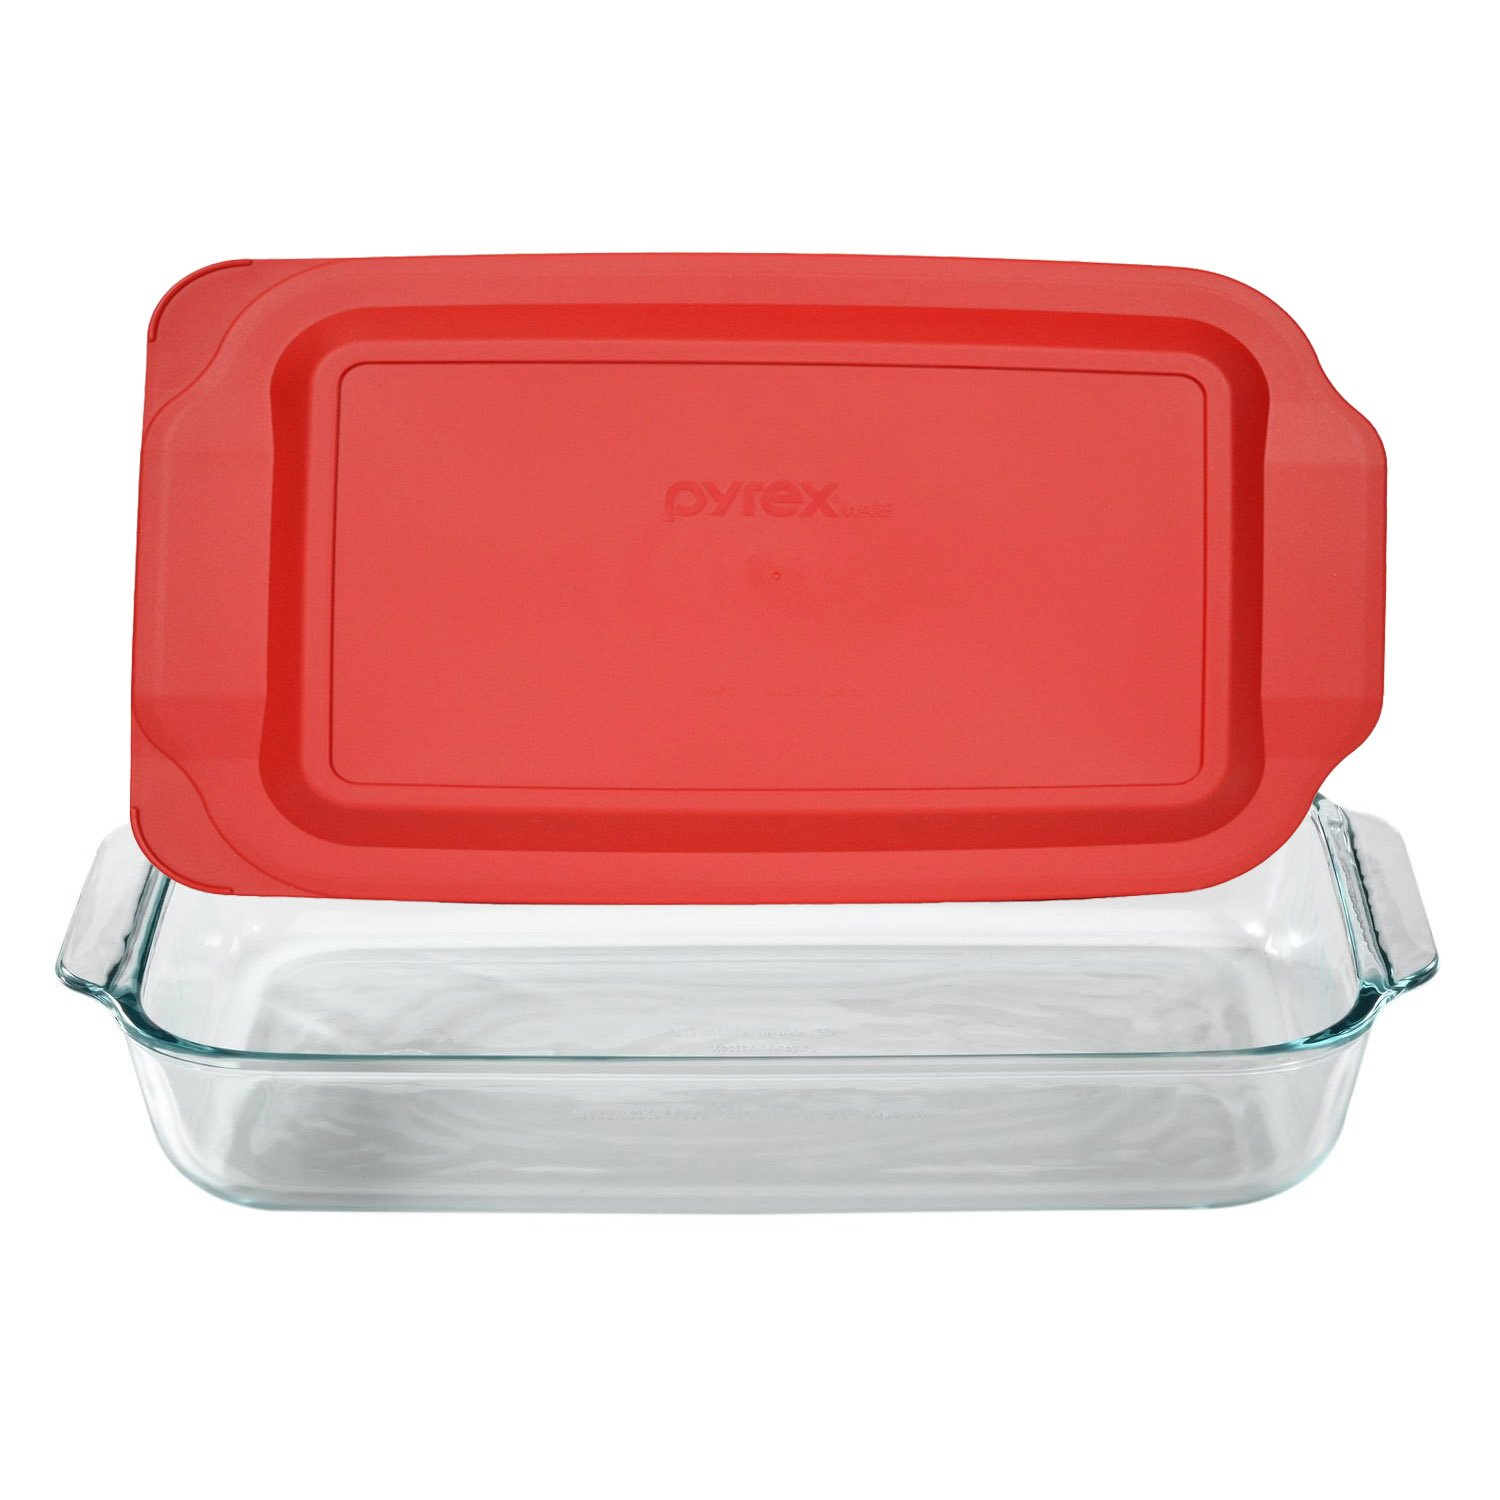 Pyrex Basics 2 Quart Glass Oblong Baking Dish with Red Plastic Lid - 7 inch x 11 Inch by Pyrex SYNCHKG112693